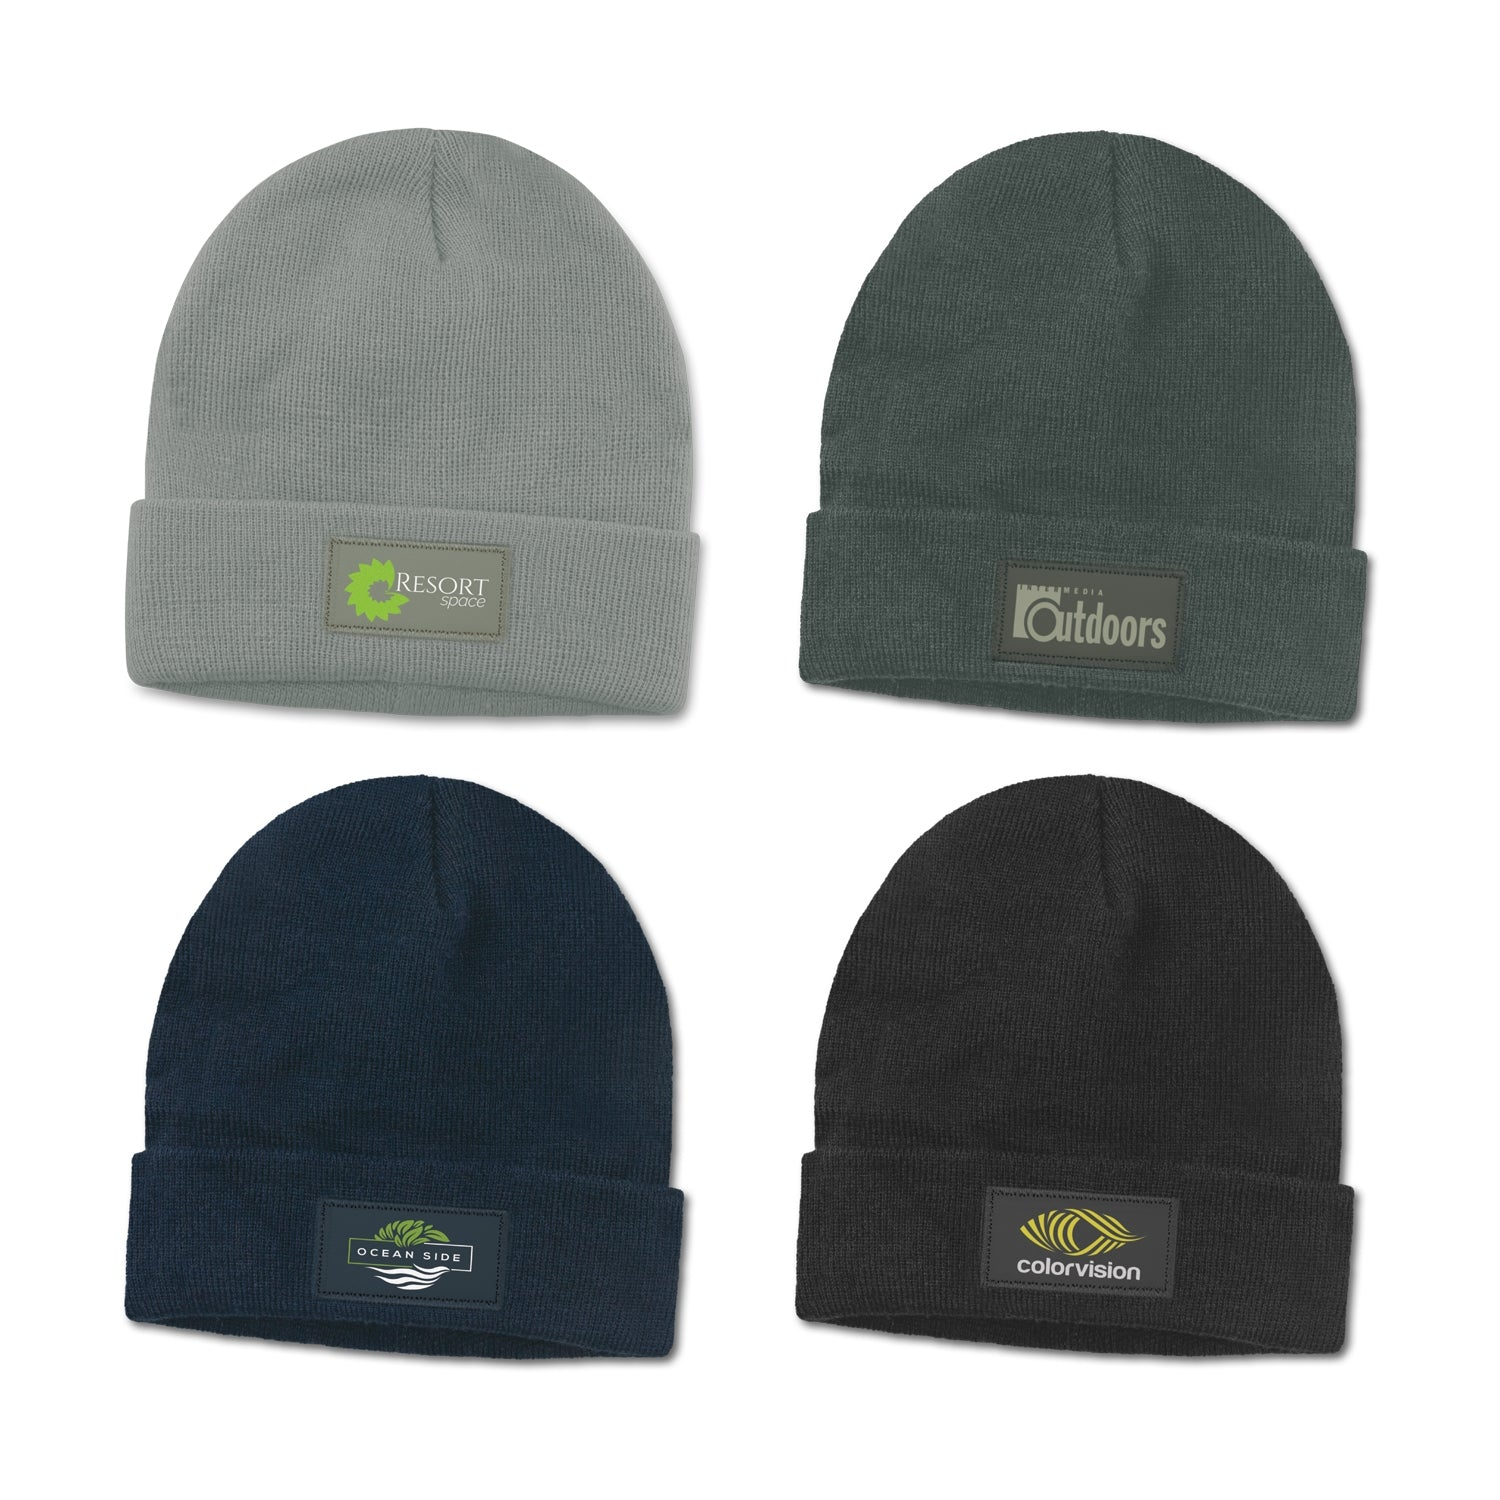 Roll Up Cuff Beanie with Patch(SHW-27T)